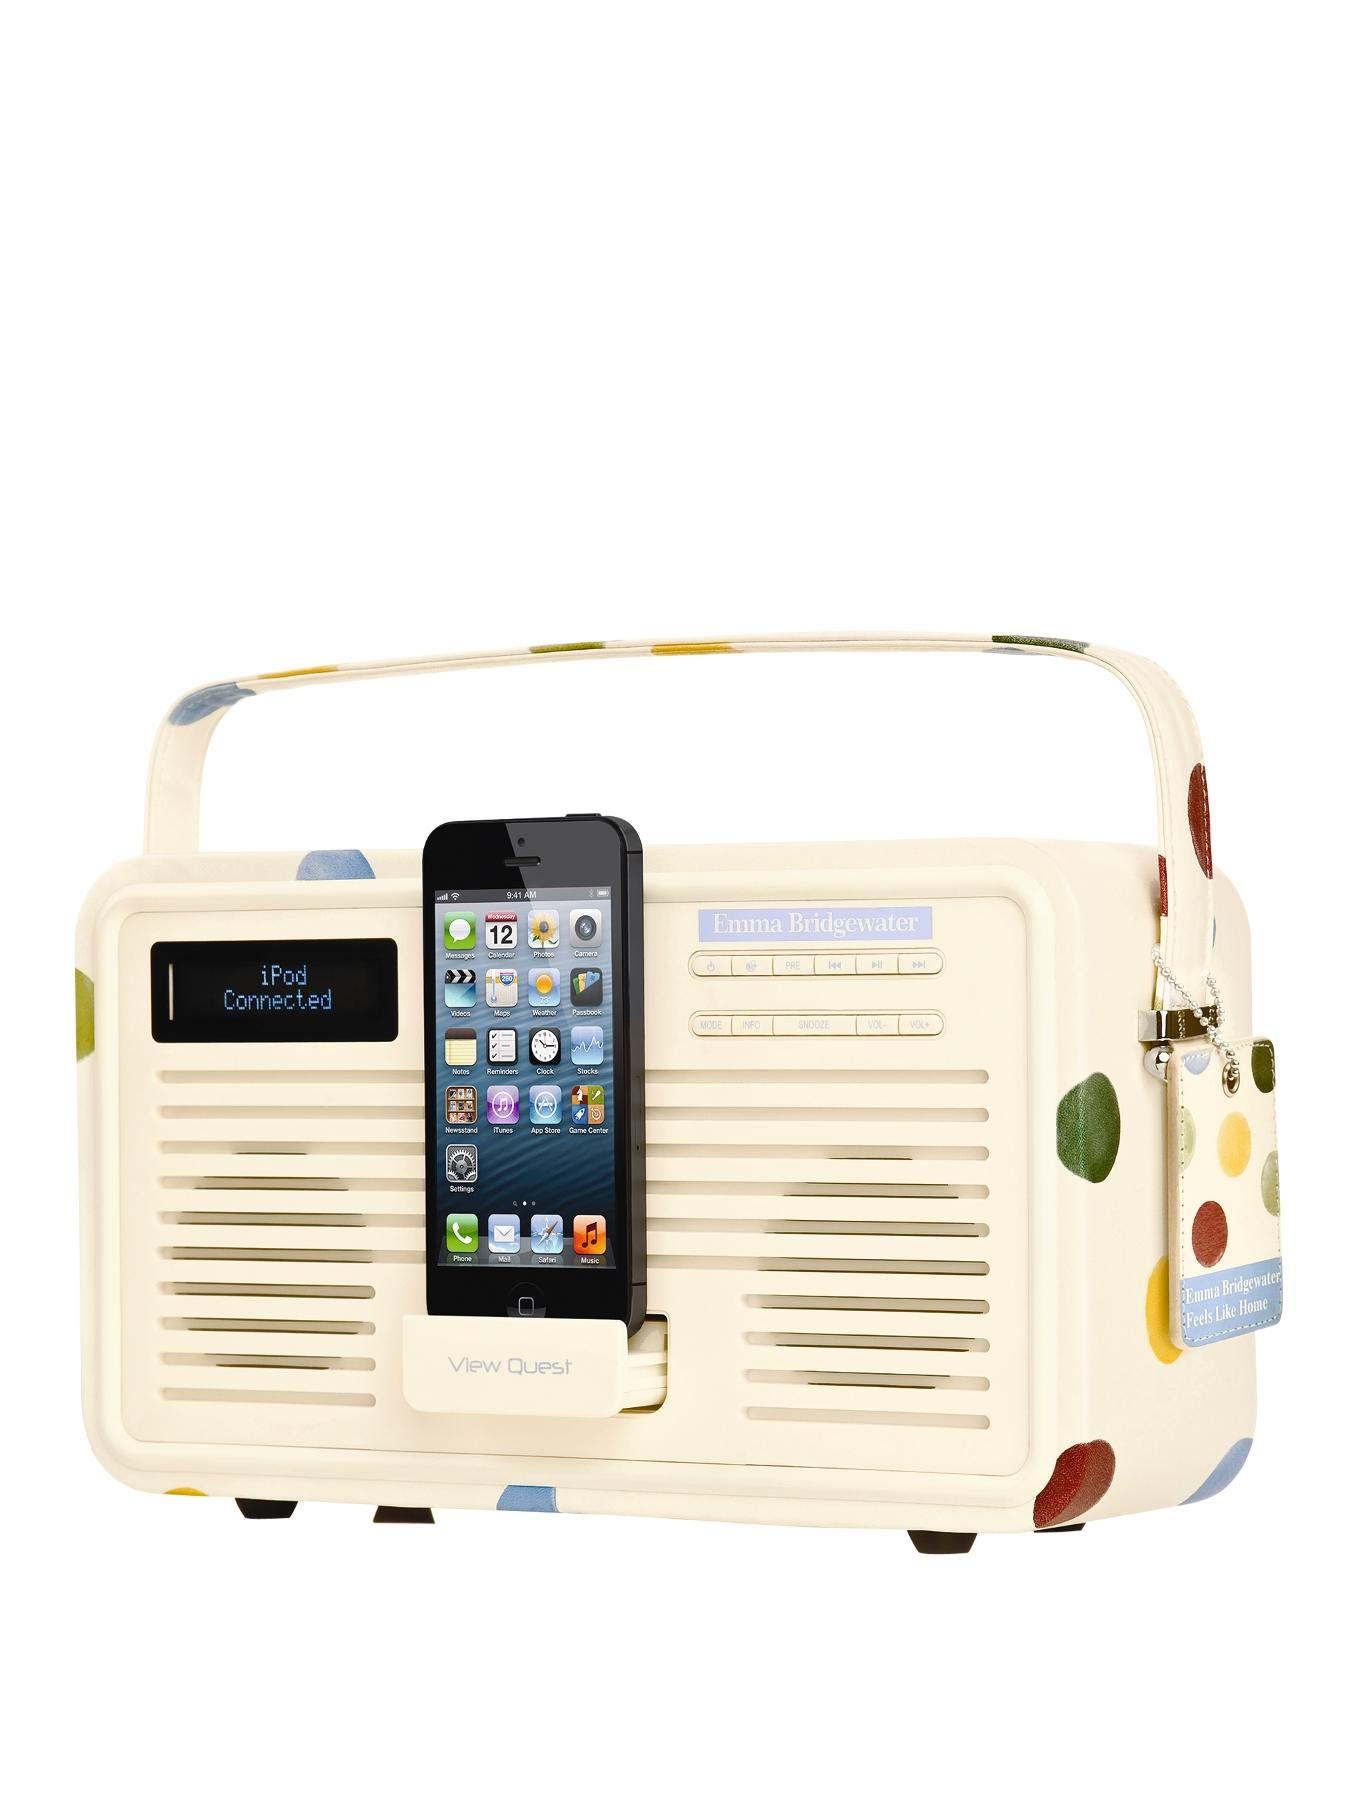 Emma Bridgewater Retro DAB Radio with Lightning Dock - Polka Dot